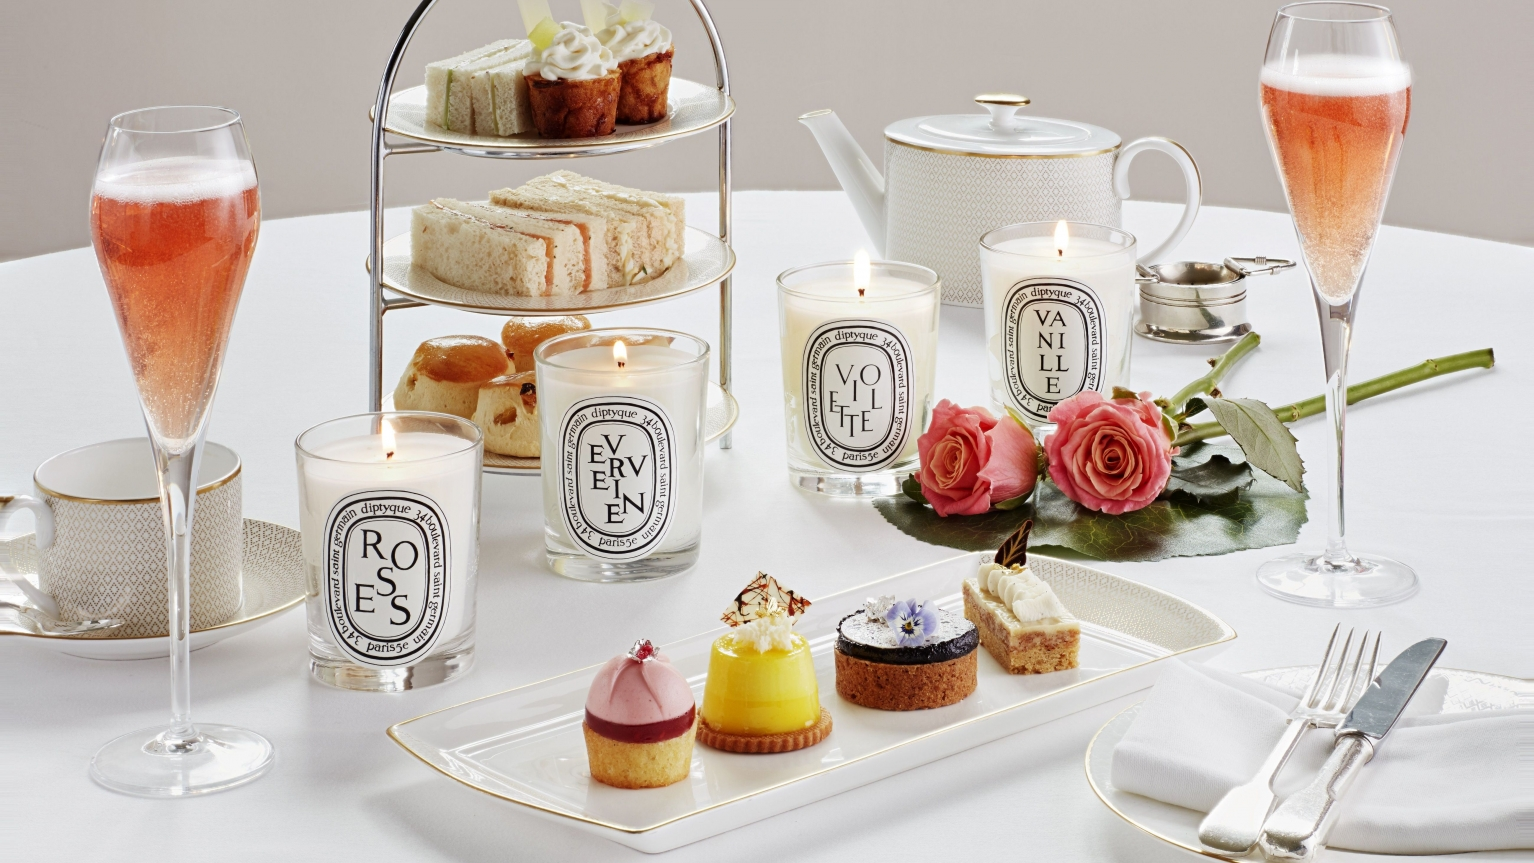 diptyque afternoon tea at hotel cafe royal london